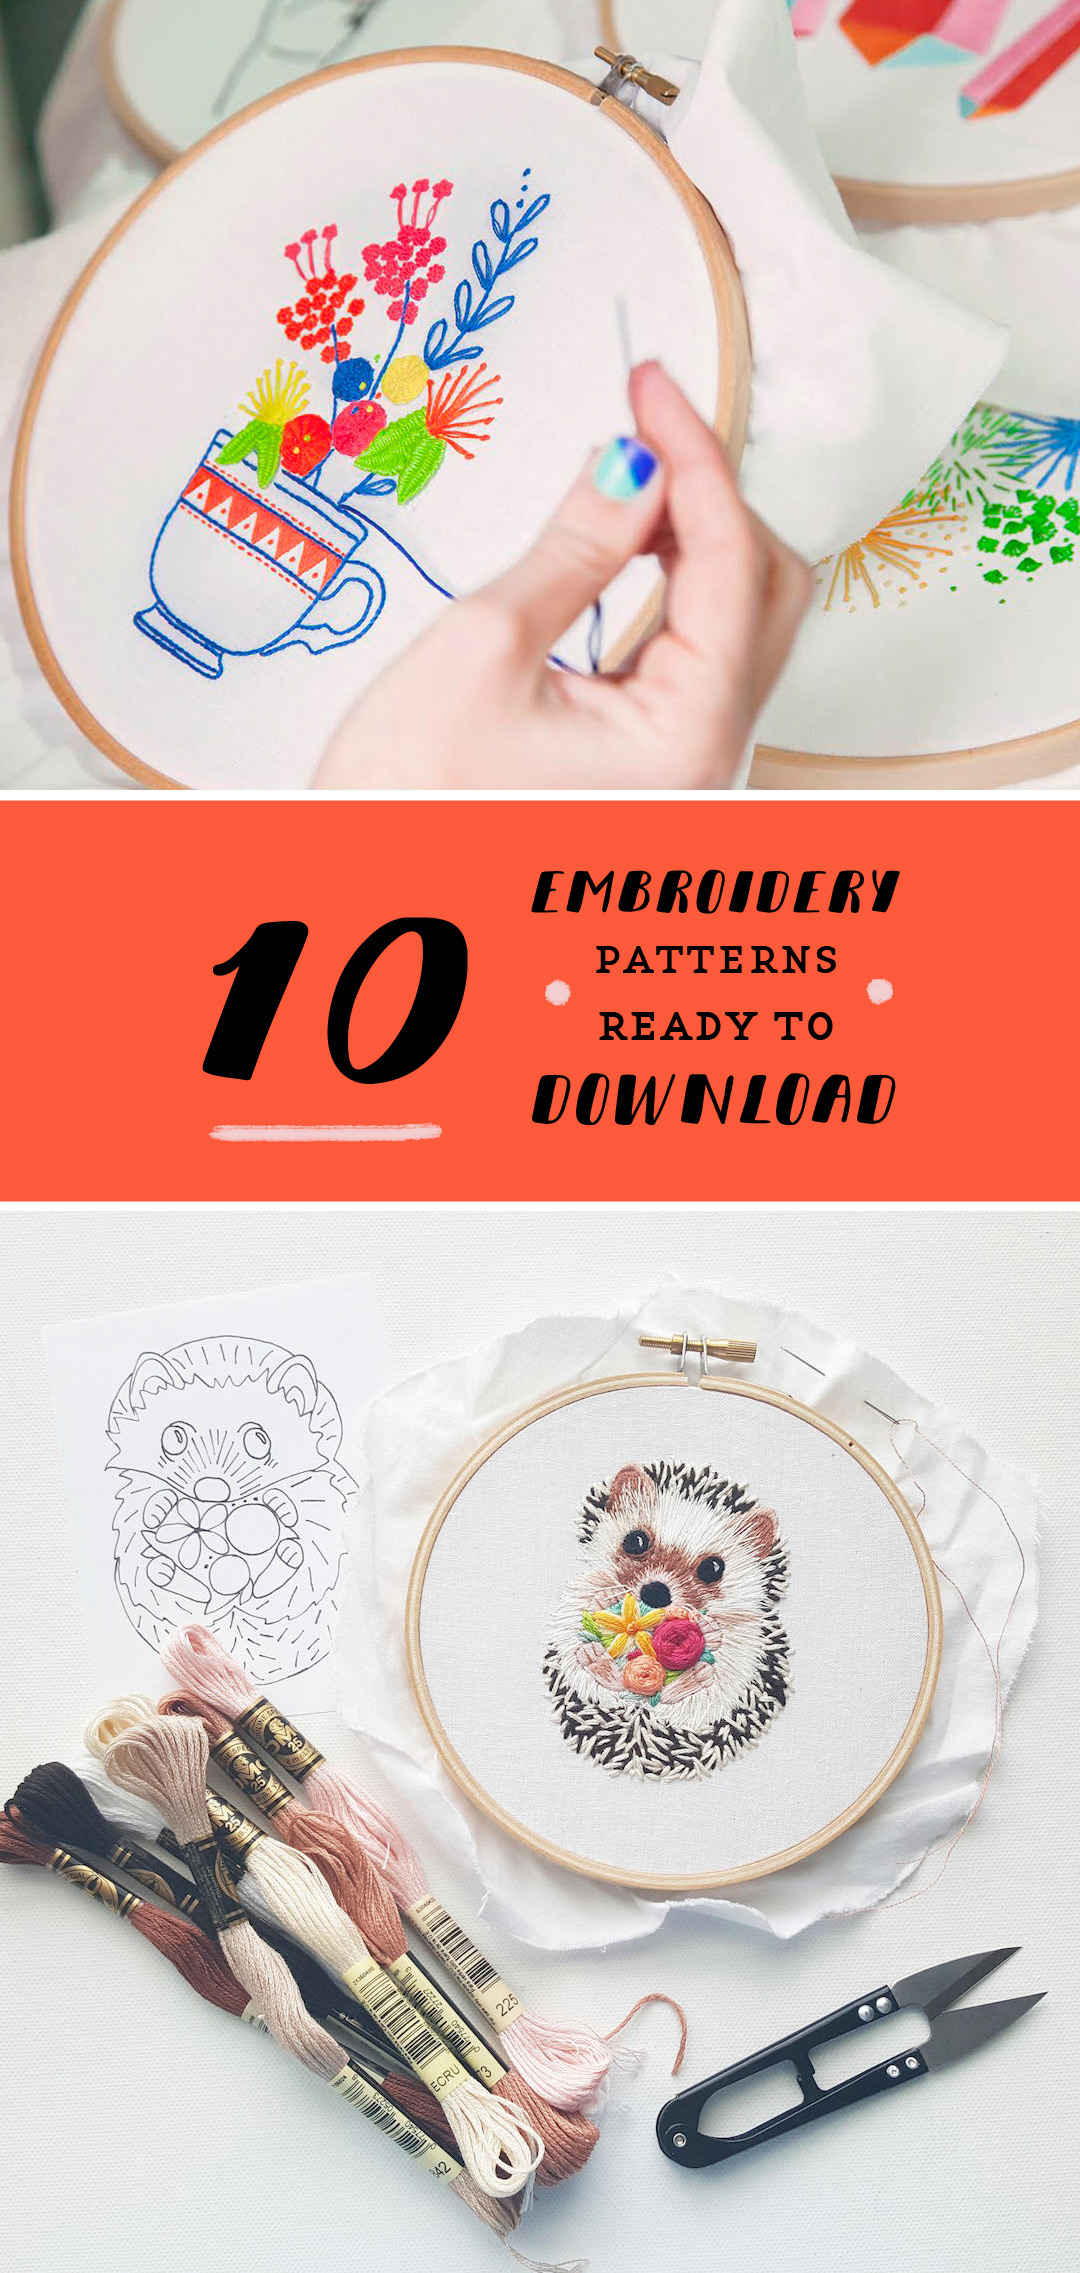 Embroidery Patterns Free Interesting Inspiration